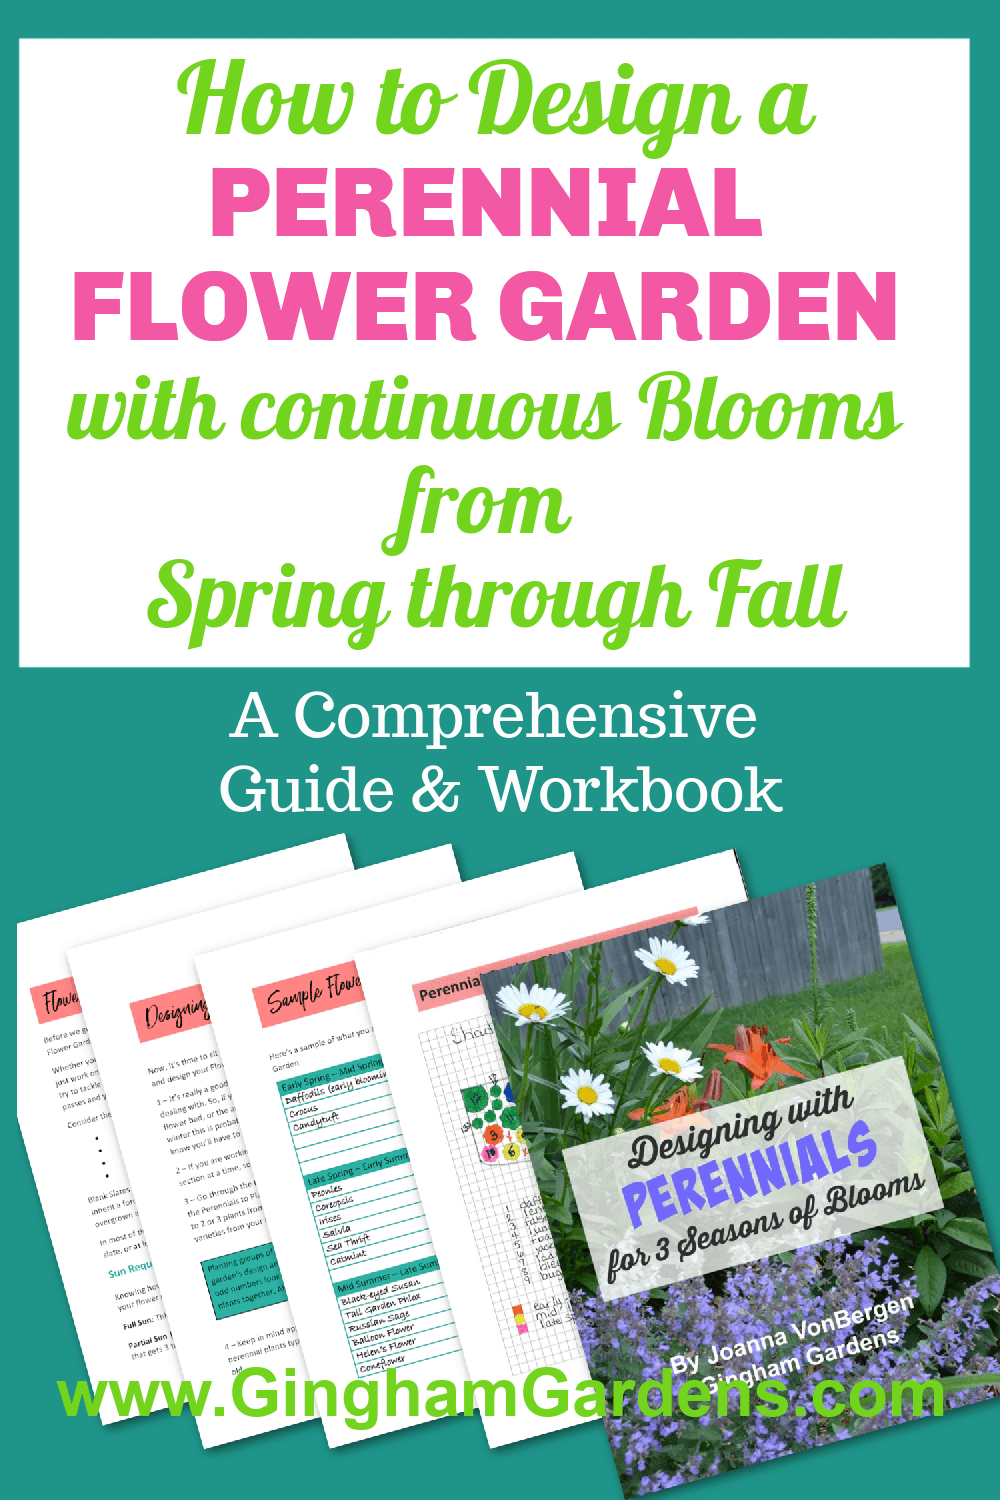 Image of a flower garden book with text overlay - How to Design a Perennial Flower Garden that Blooms from Early Spring right through Fall